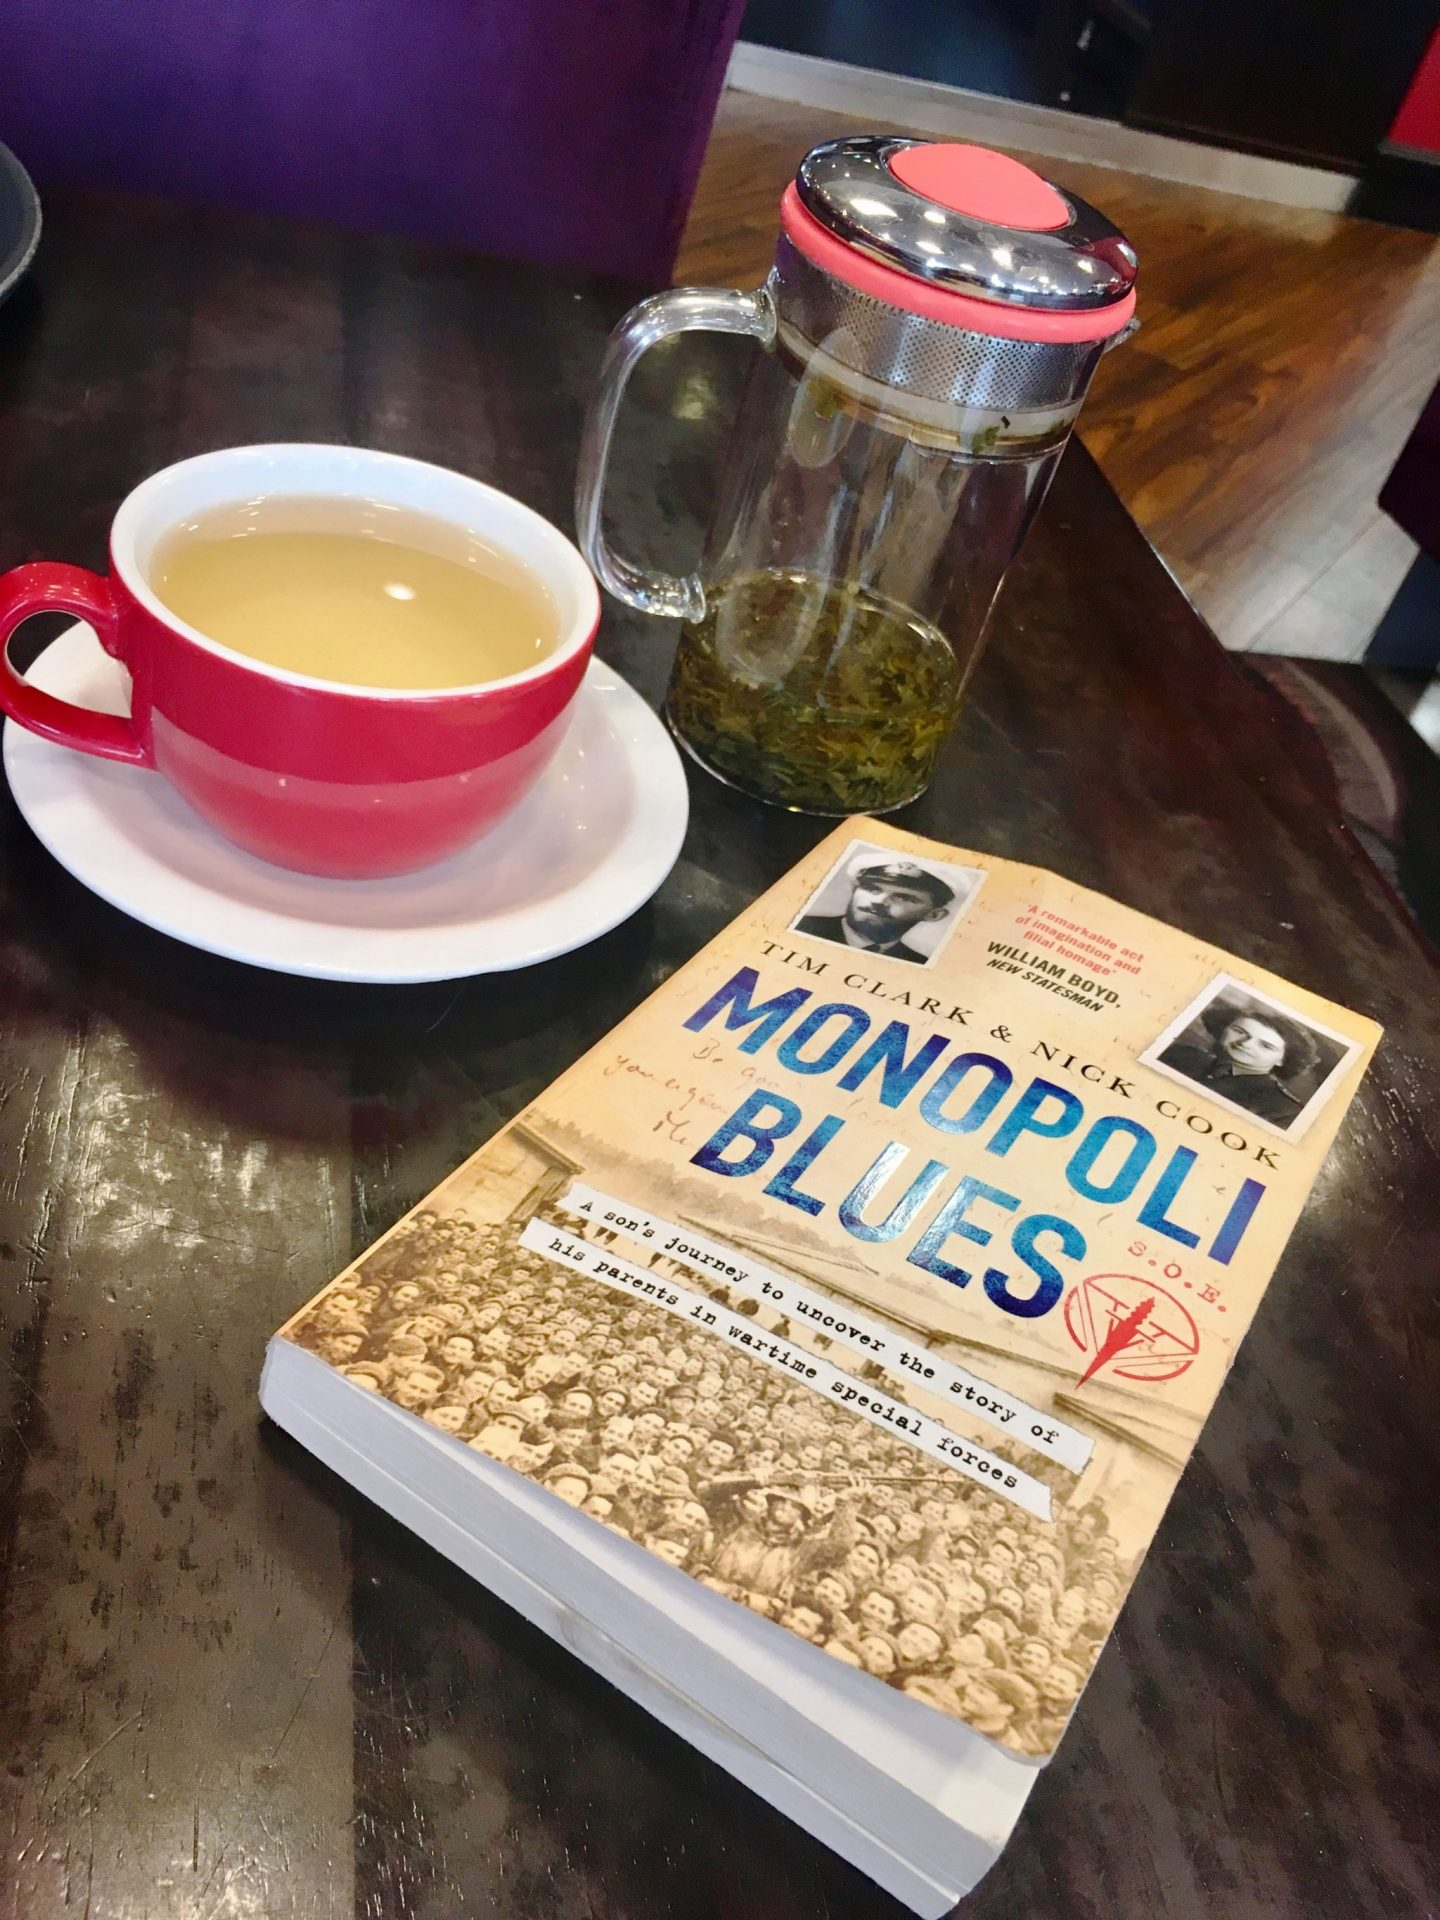 Monopoli Blues; a true and moving narrative